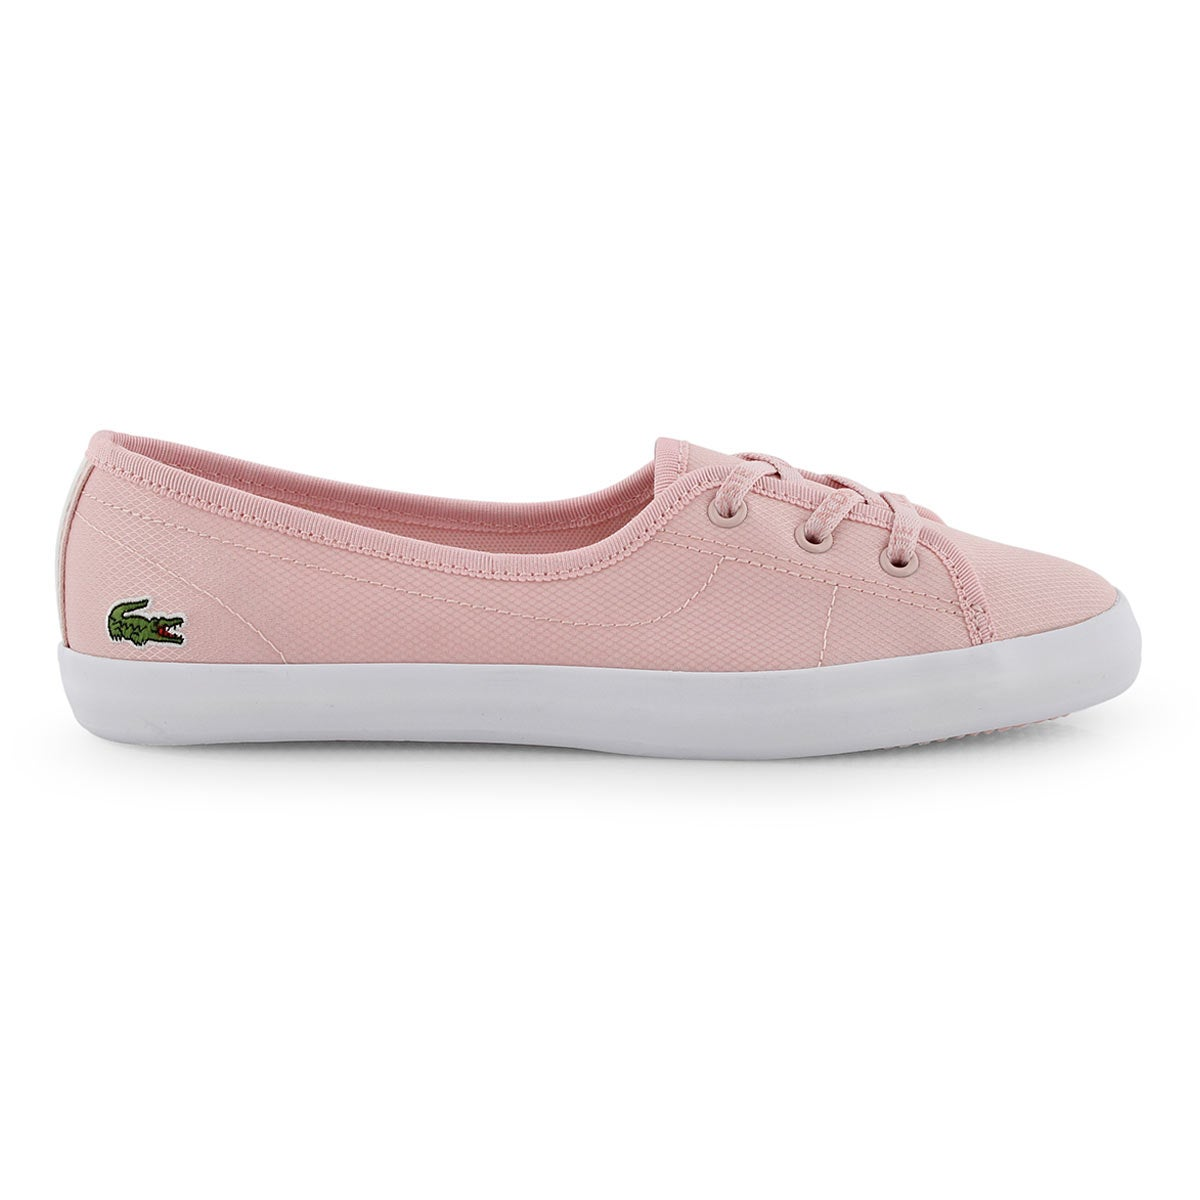 Lds ZianeChunky119 2 pnk/wht slip on